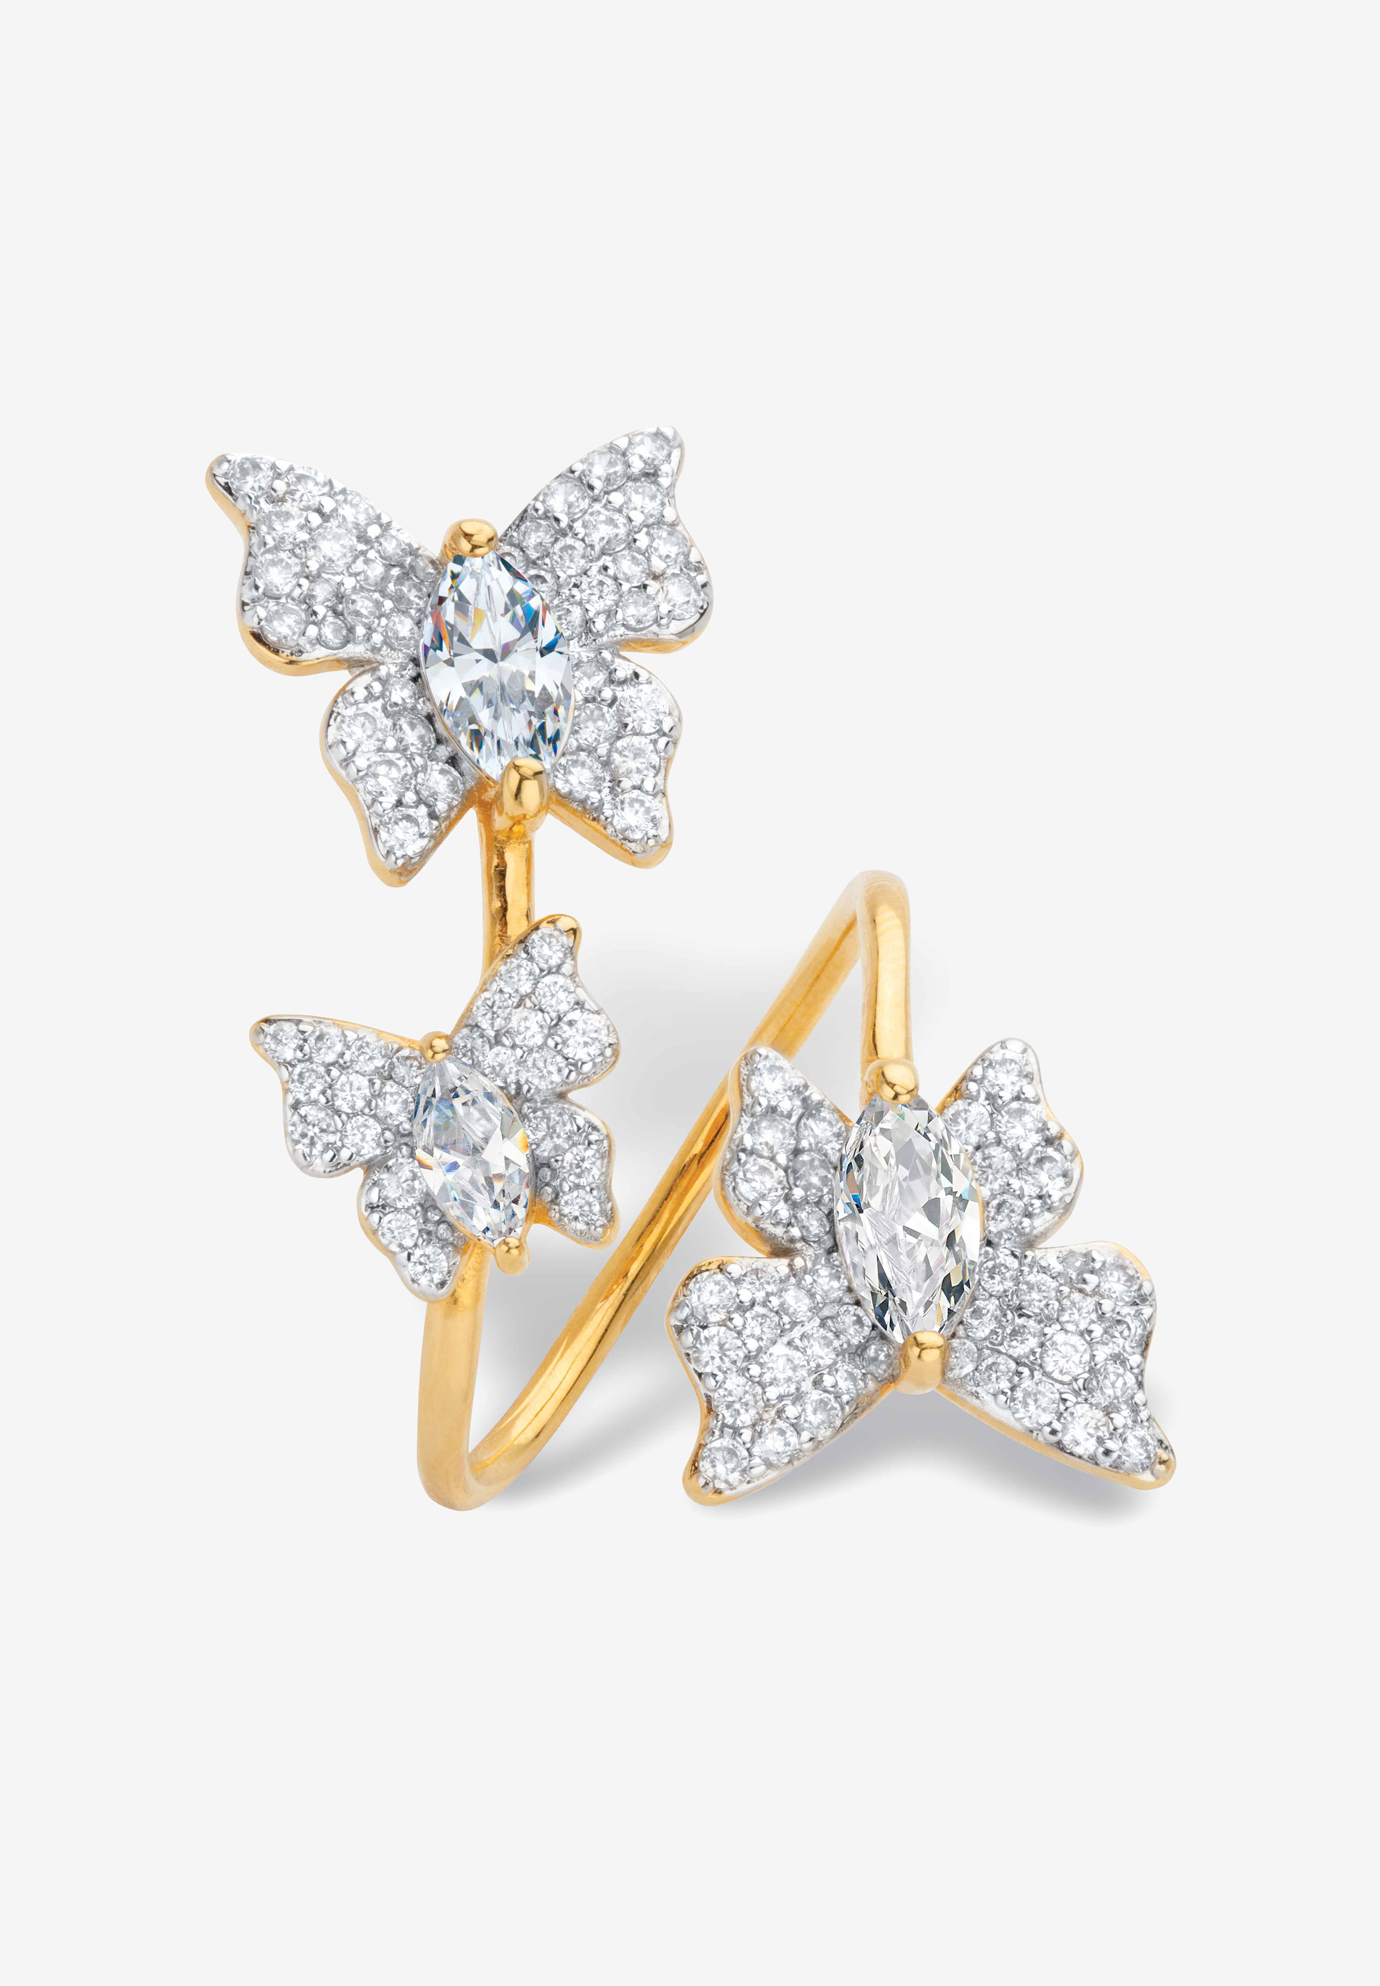 Gold Plated Marquise Cubic Zirconia Butterfly Ring (2 1/3 cttw TDW),